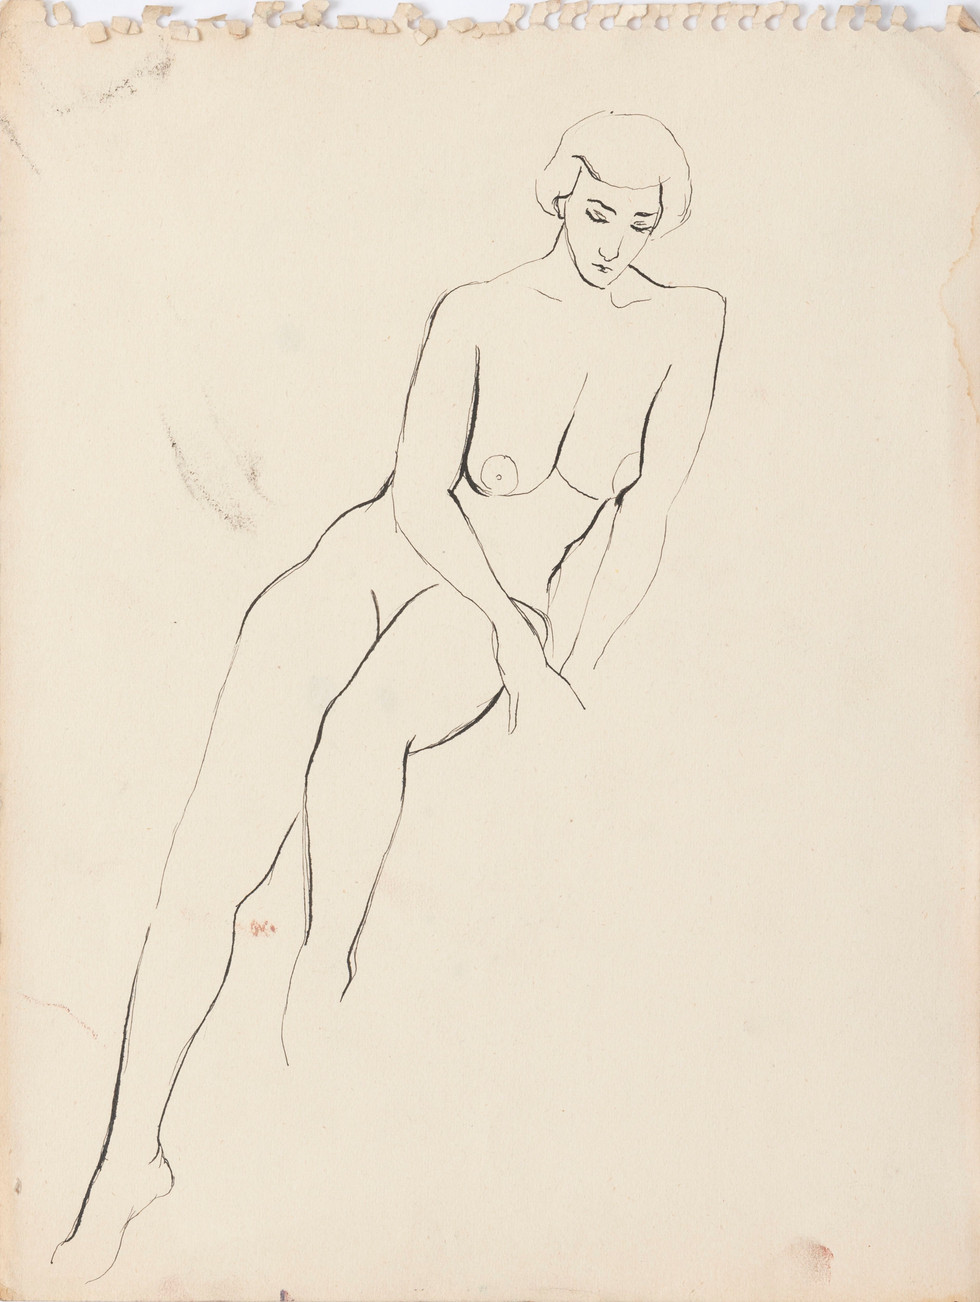 Untitled sketch - nude woman